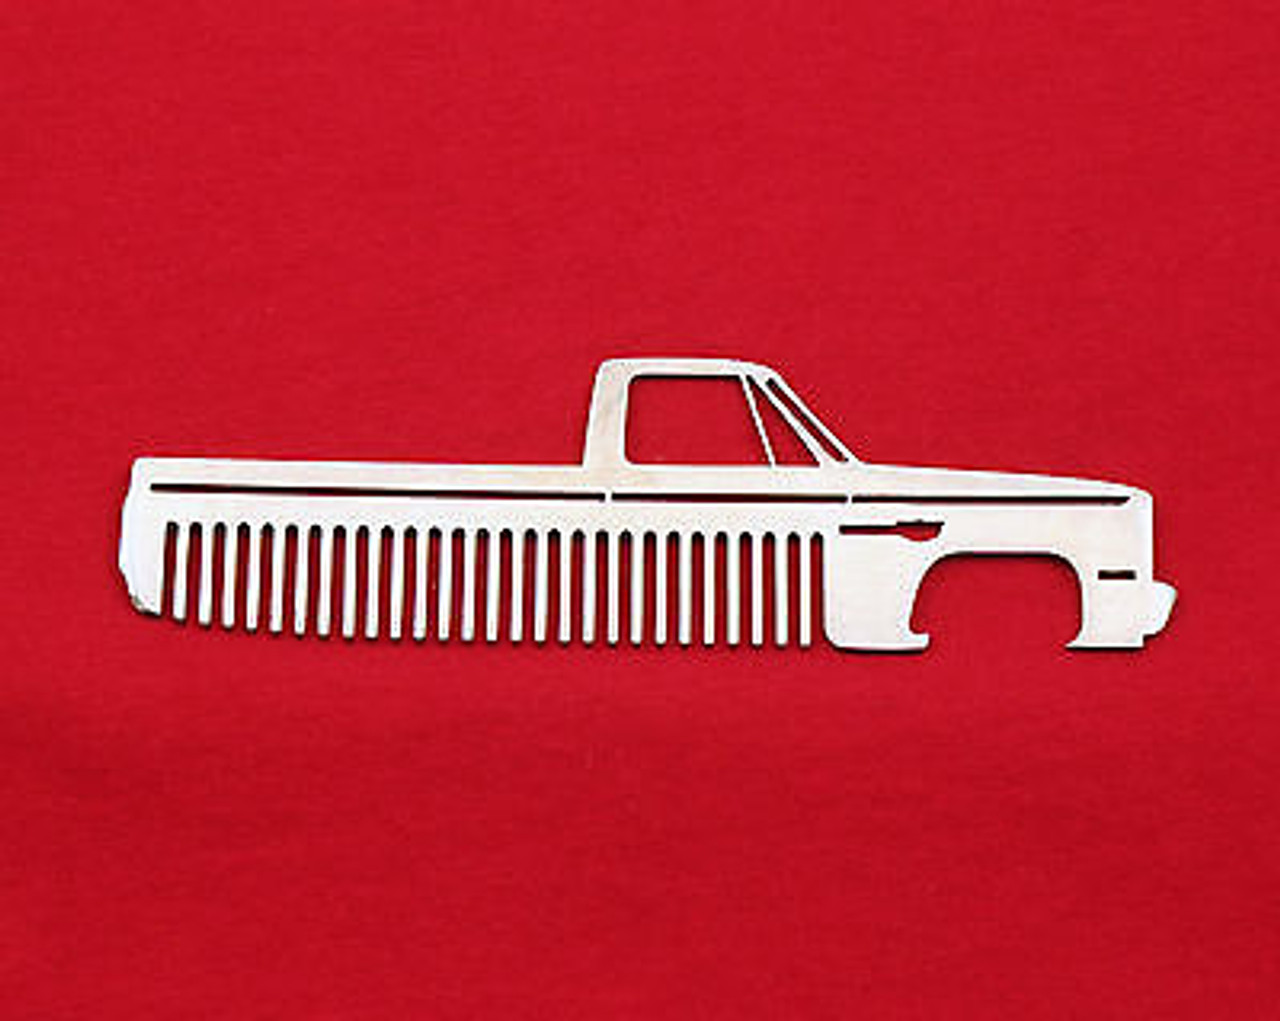 73 87 chevy truck brushed stainless steel metal trim beard hair mustache comb [ 1280 x 1021 Pixel ]